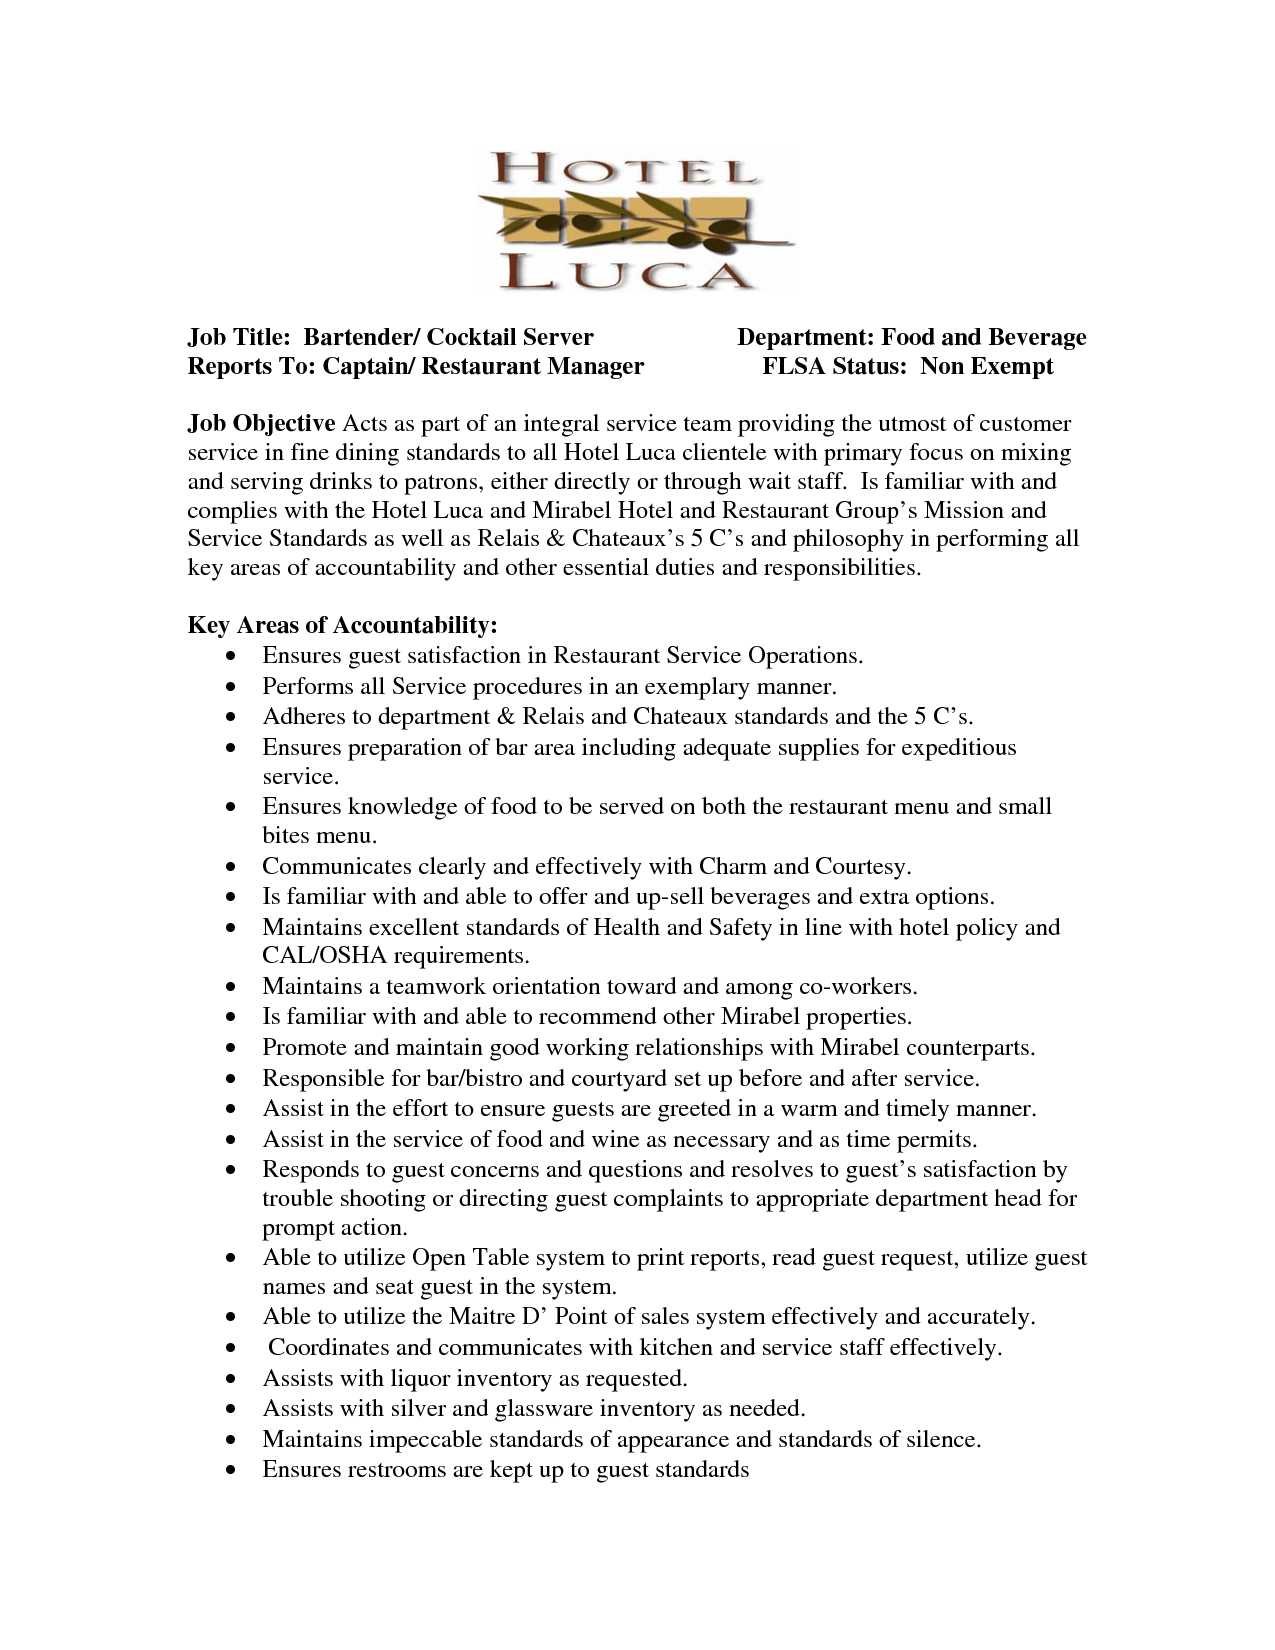 Restaurant Server Description For Resume Sample Resume For Cocktail Waitress Job Position